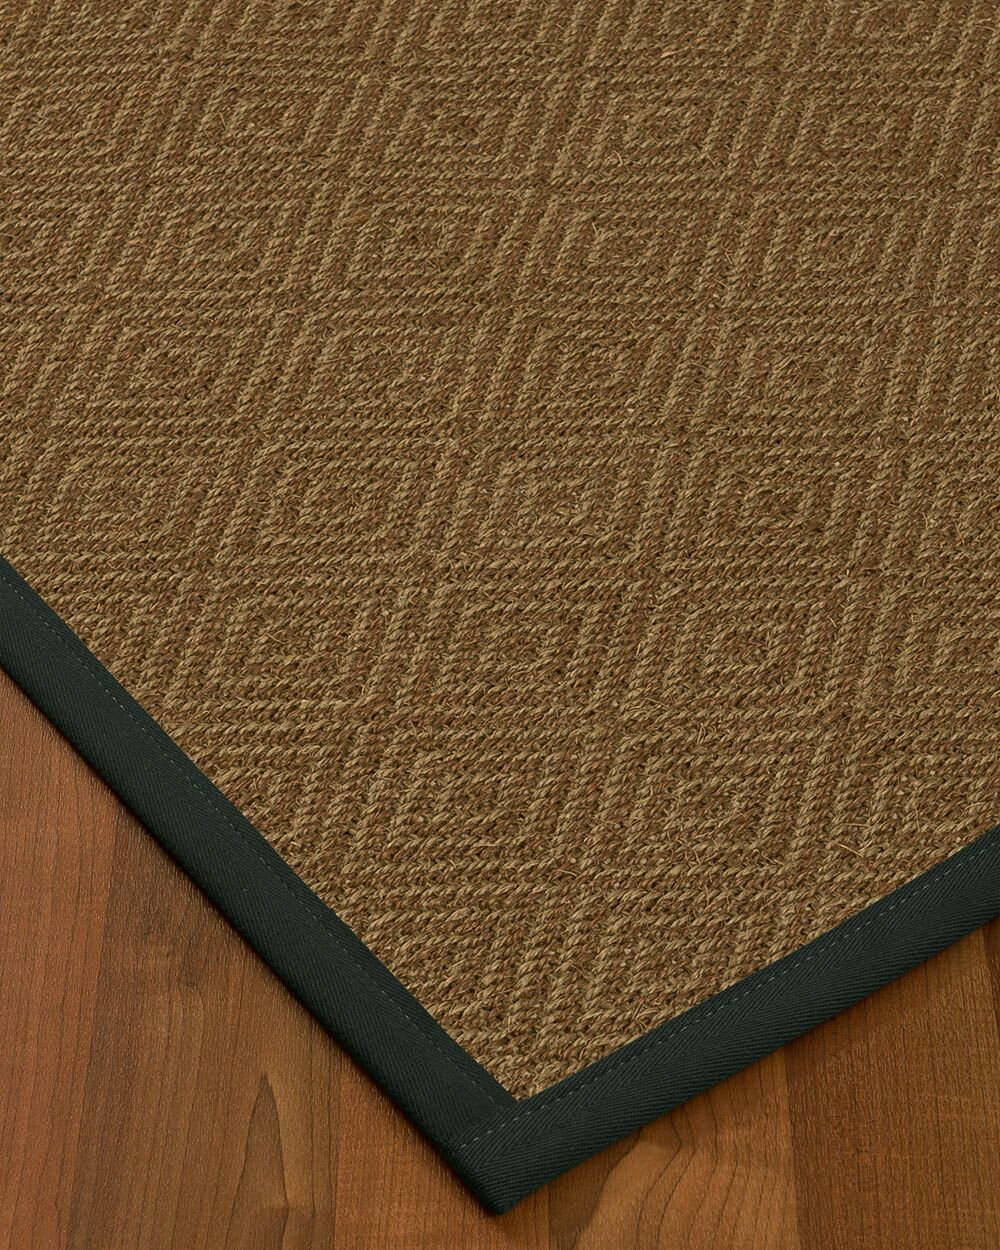 Kenn Border Hand-Woven Brown/Onyx Area Rug Rug Size: Rectangle 8' x 10', Rug Pad Included: Yes